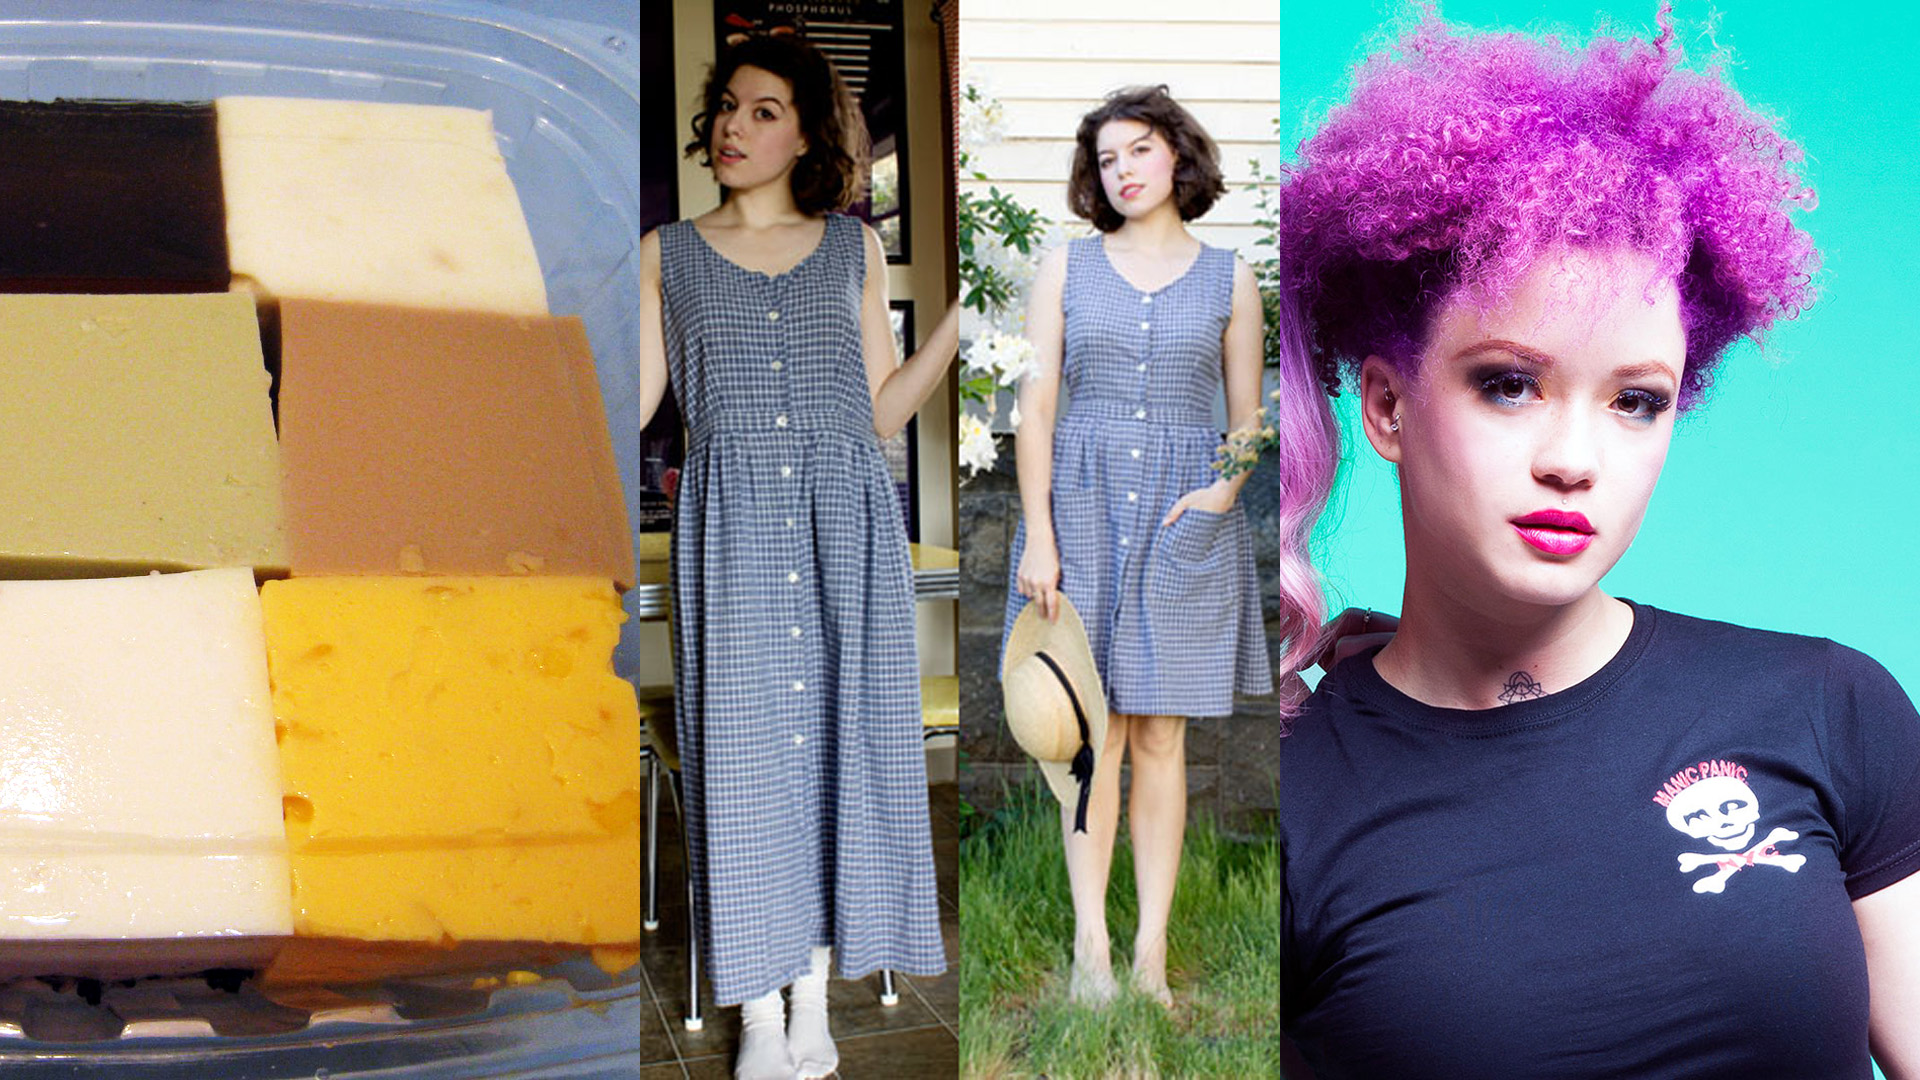 triptych of cubes of food, dress makeover, and fashion hair color